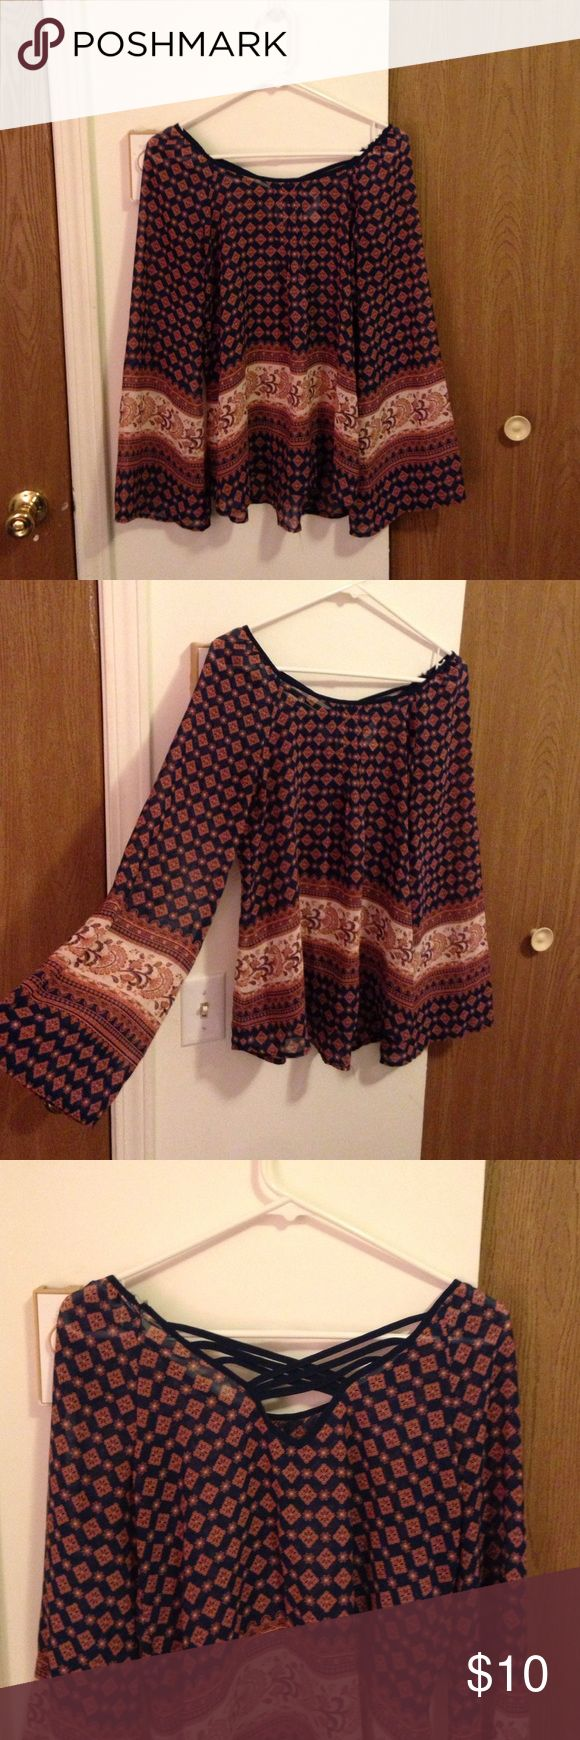 Charming Charlie long sleeve shirt This beautiful shirt is very thin, flowy, and a perfect way to dress up a pair of jeans. I always found it very flattering. A few of the threads are slightly torn in the upper back, but never noticeable! (You can see in picture). Otherwise in wonderful shape! Tops